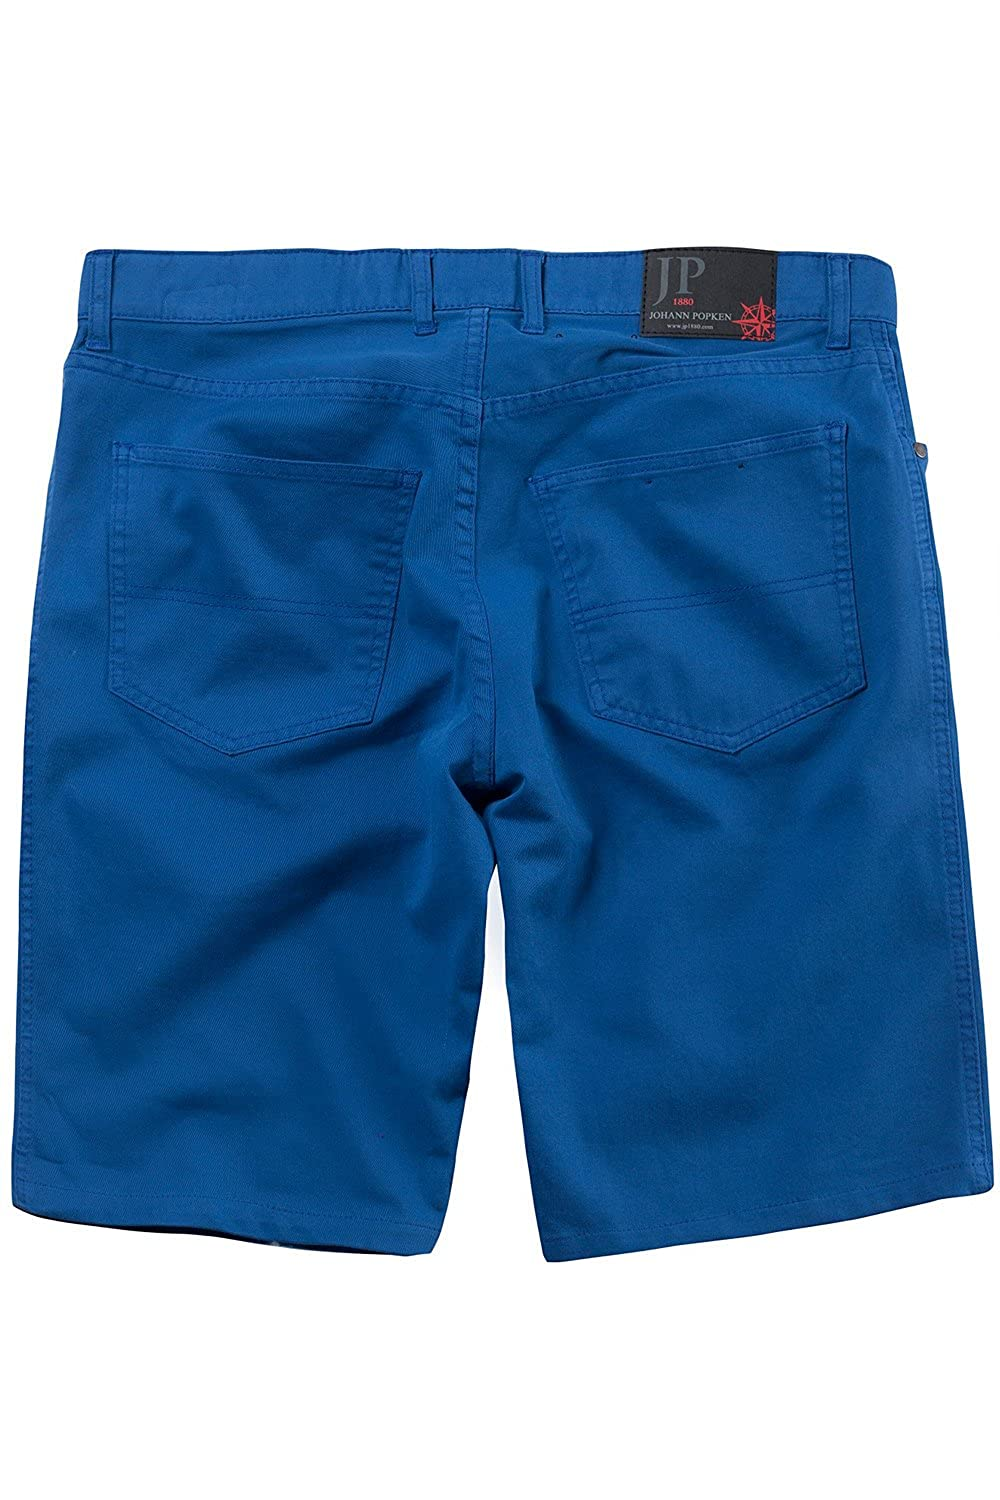 JP1880 Men's Big & Tall Plain Front Bermuda Shorts Blue 60 703676 71-60